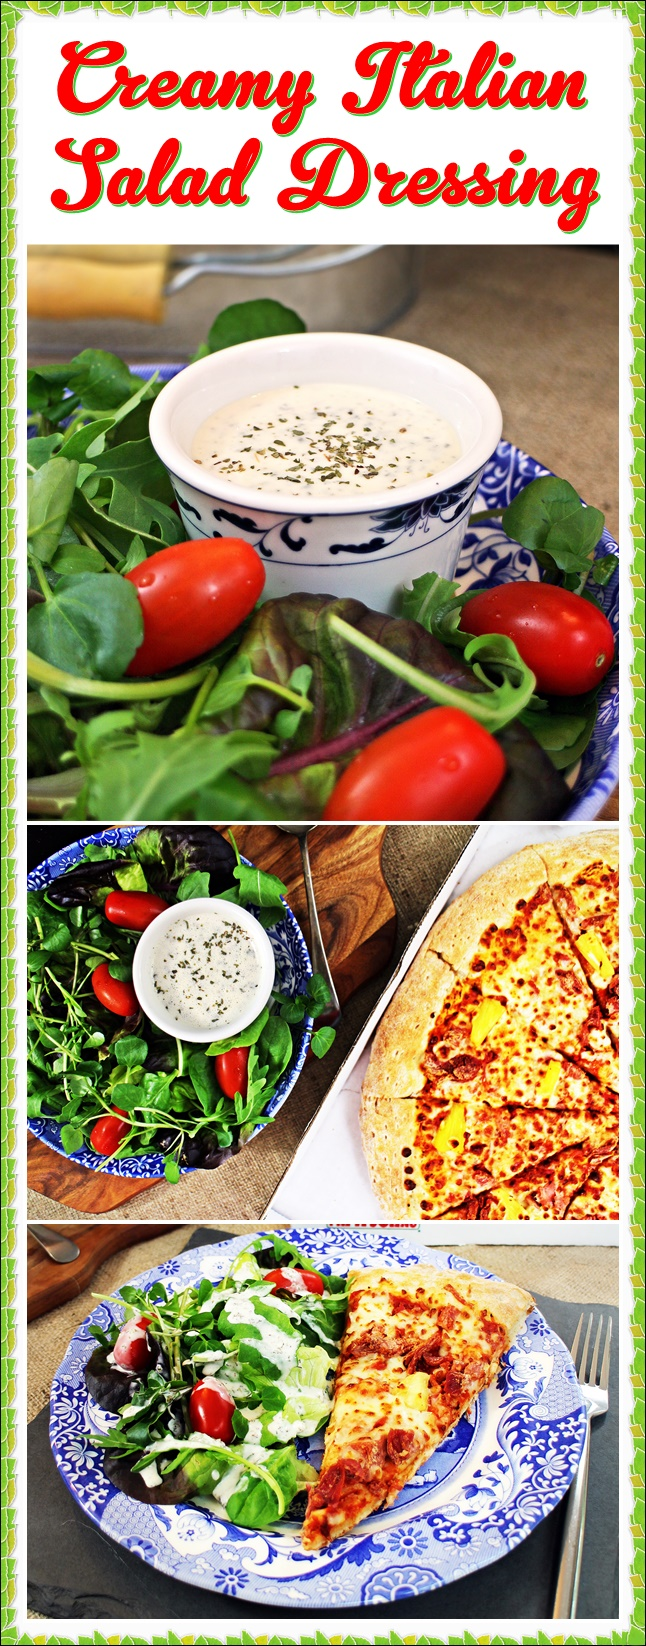 Creamy Italian Salad Dressing - great with pizza!